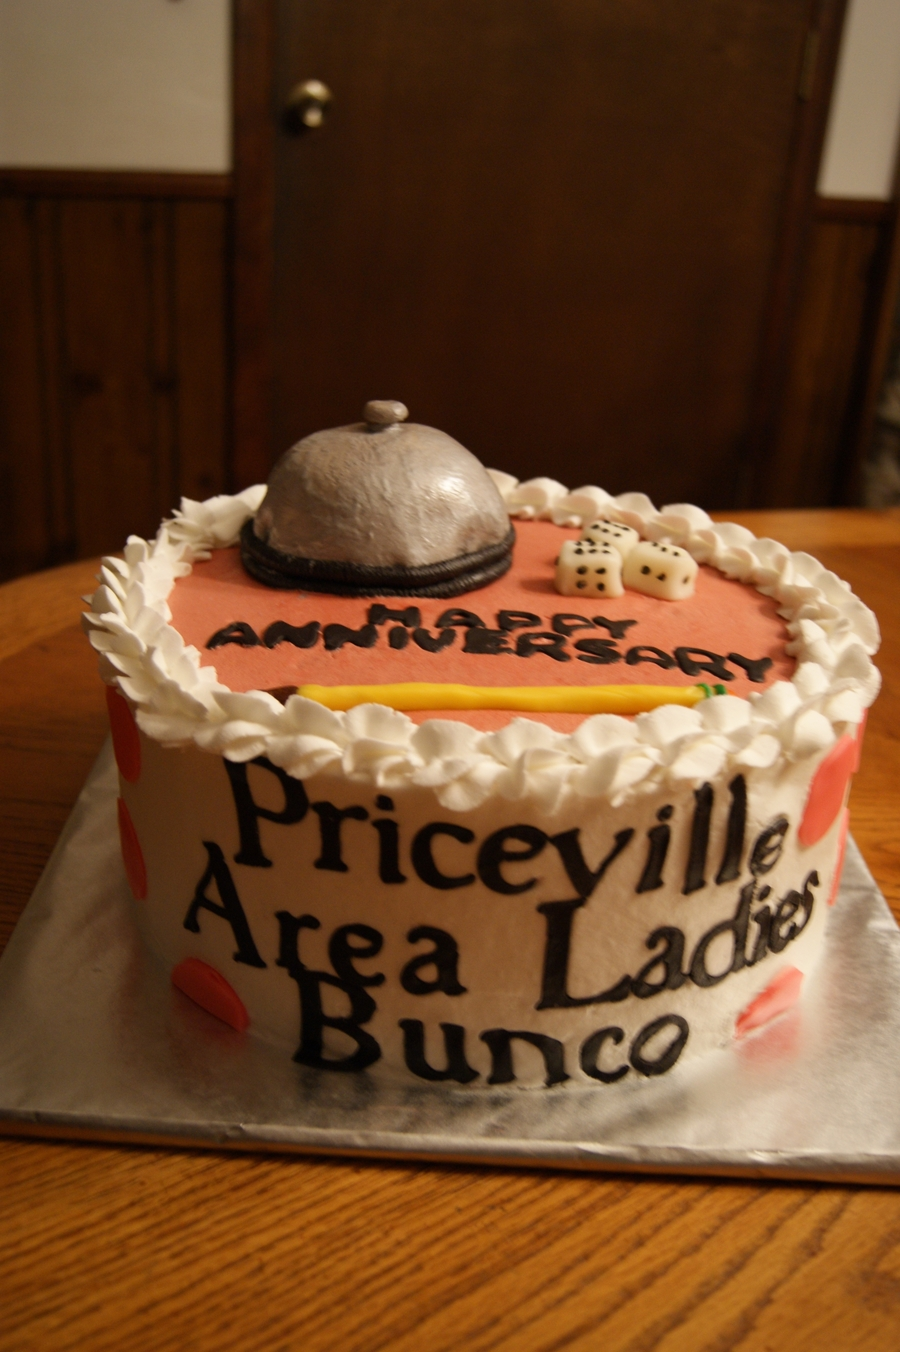 Bunco Cake For Priceville Area Ladies  on Cake Central